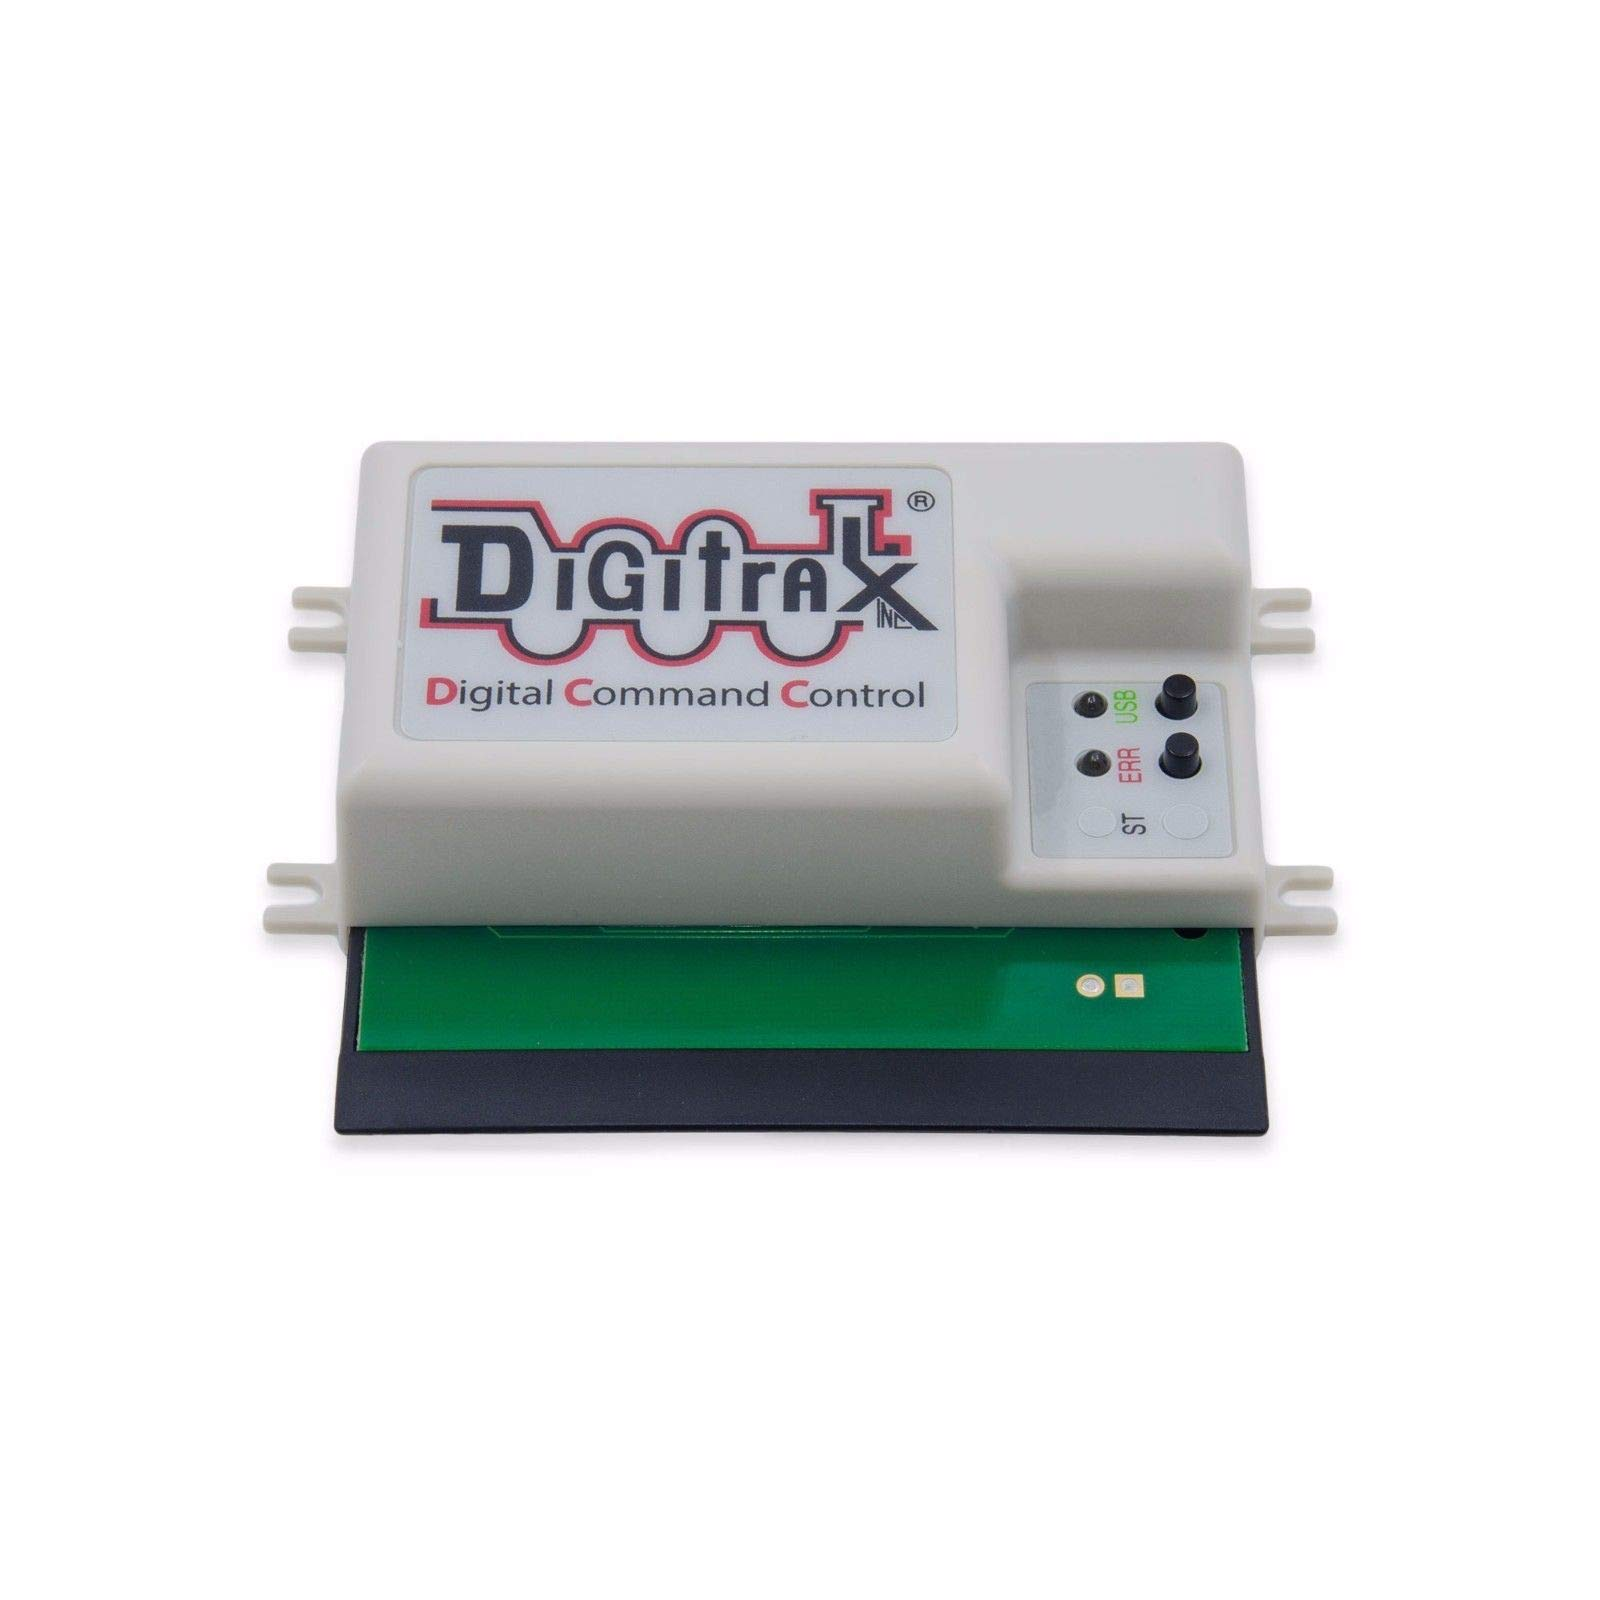 Digitrax DGTLNWI LocoNet Wifi Interface Module for iPad/iPhone